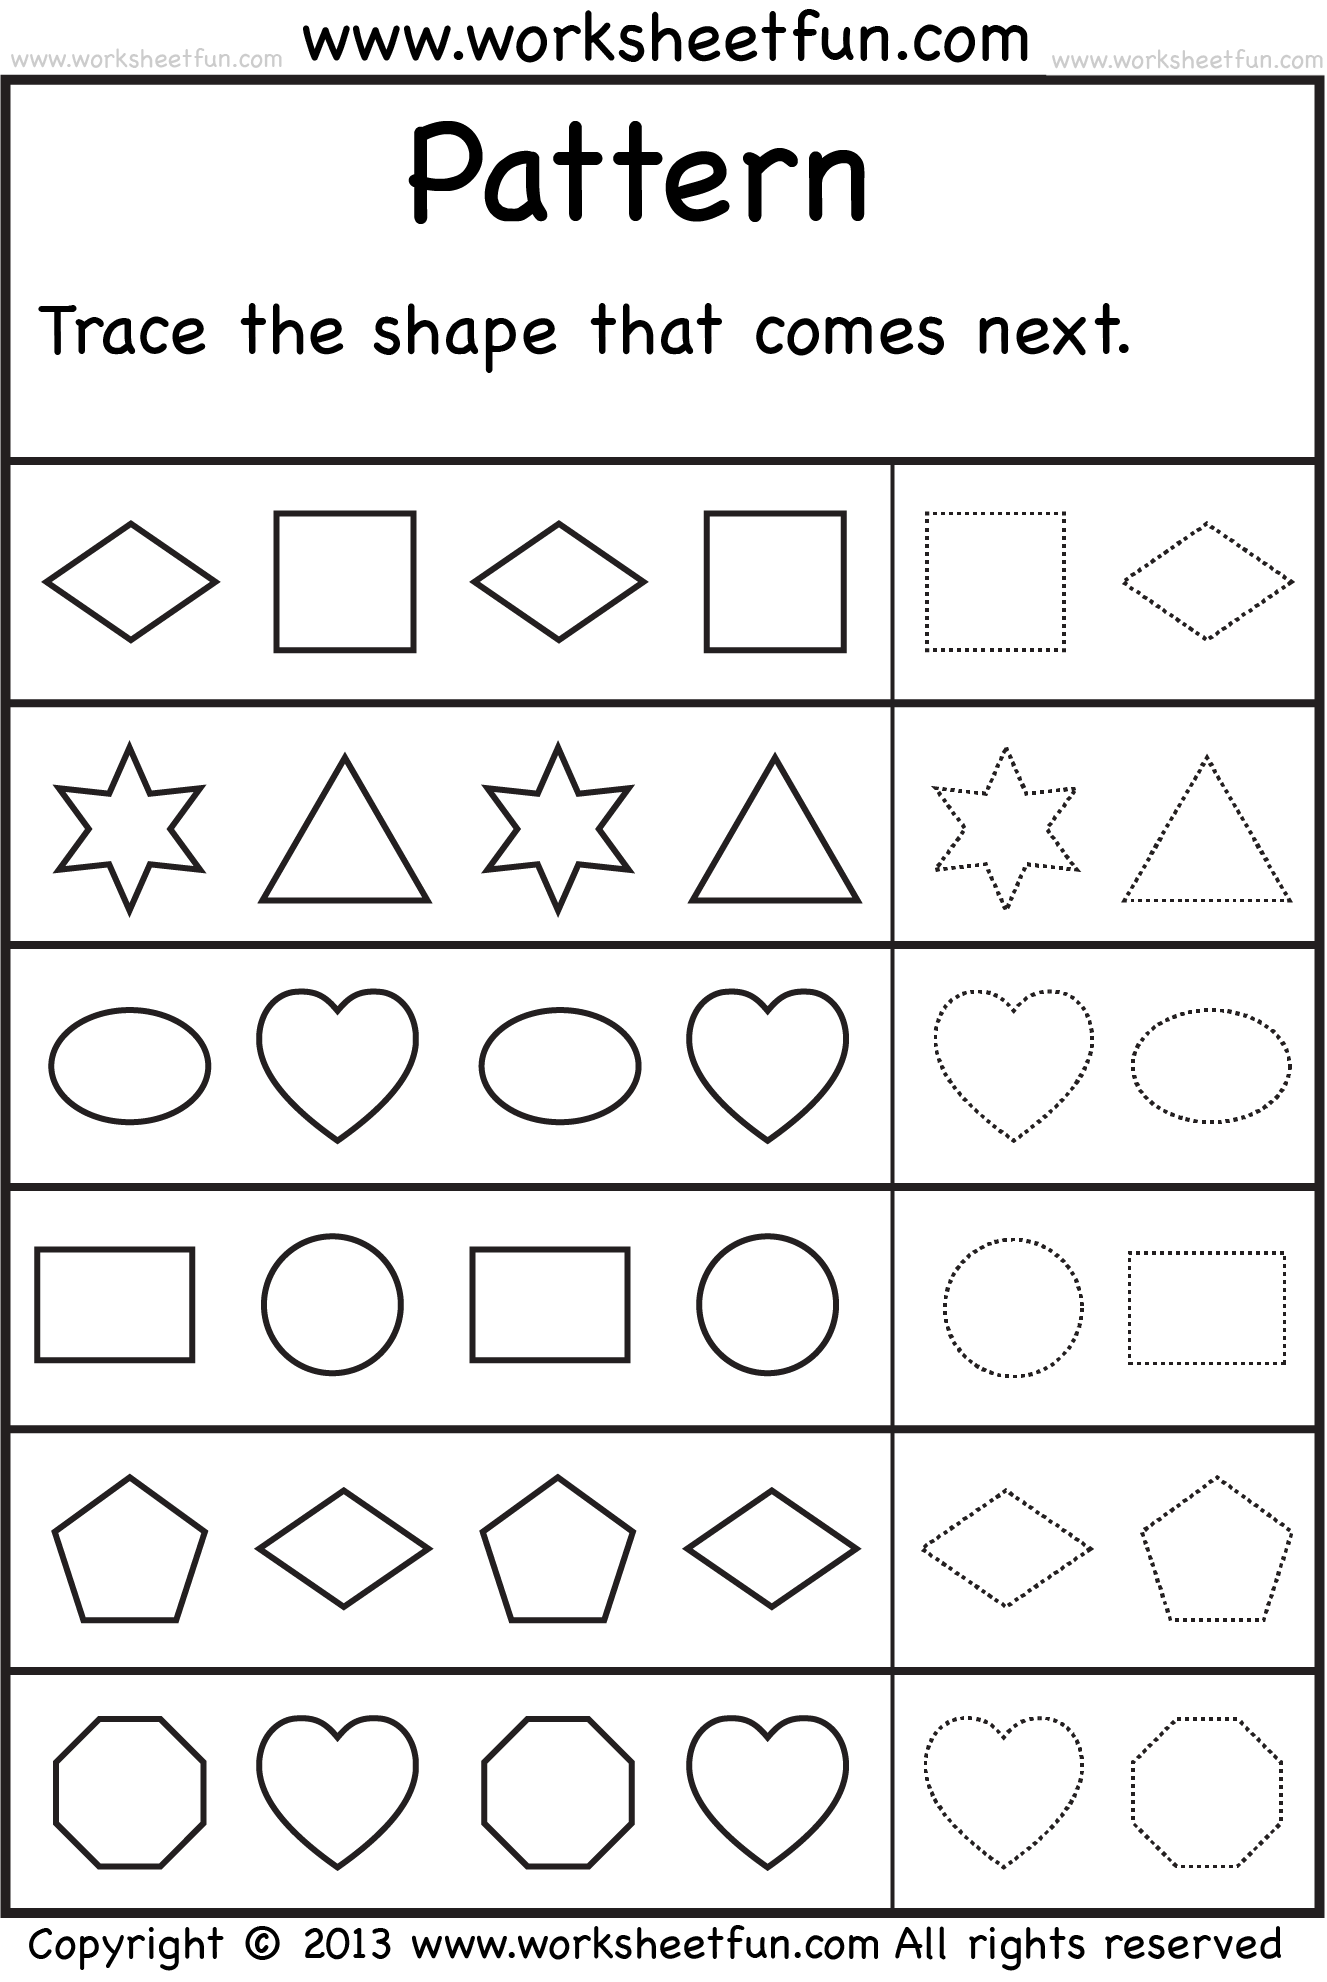 9 Images of Printable Pattern Worksheets For Preschool